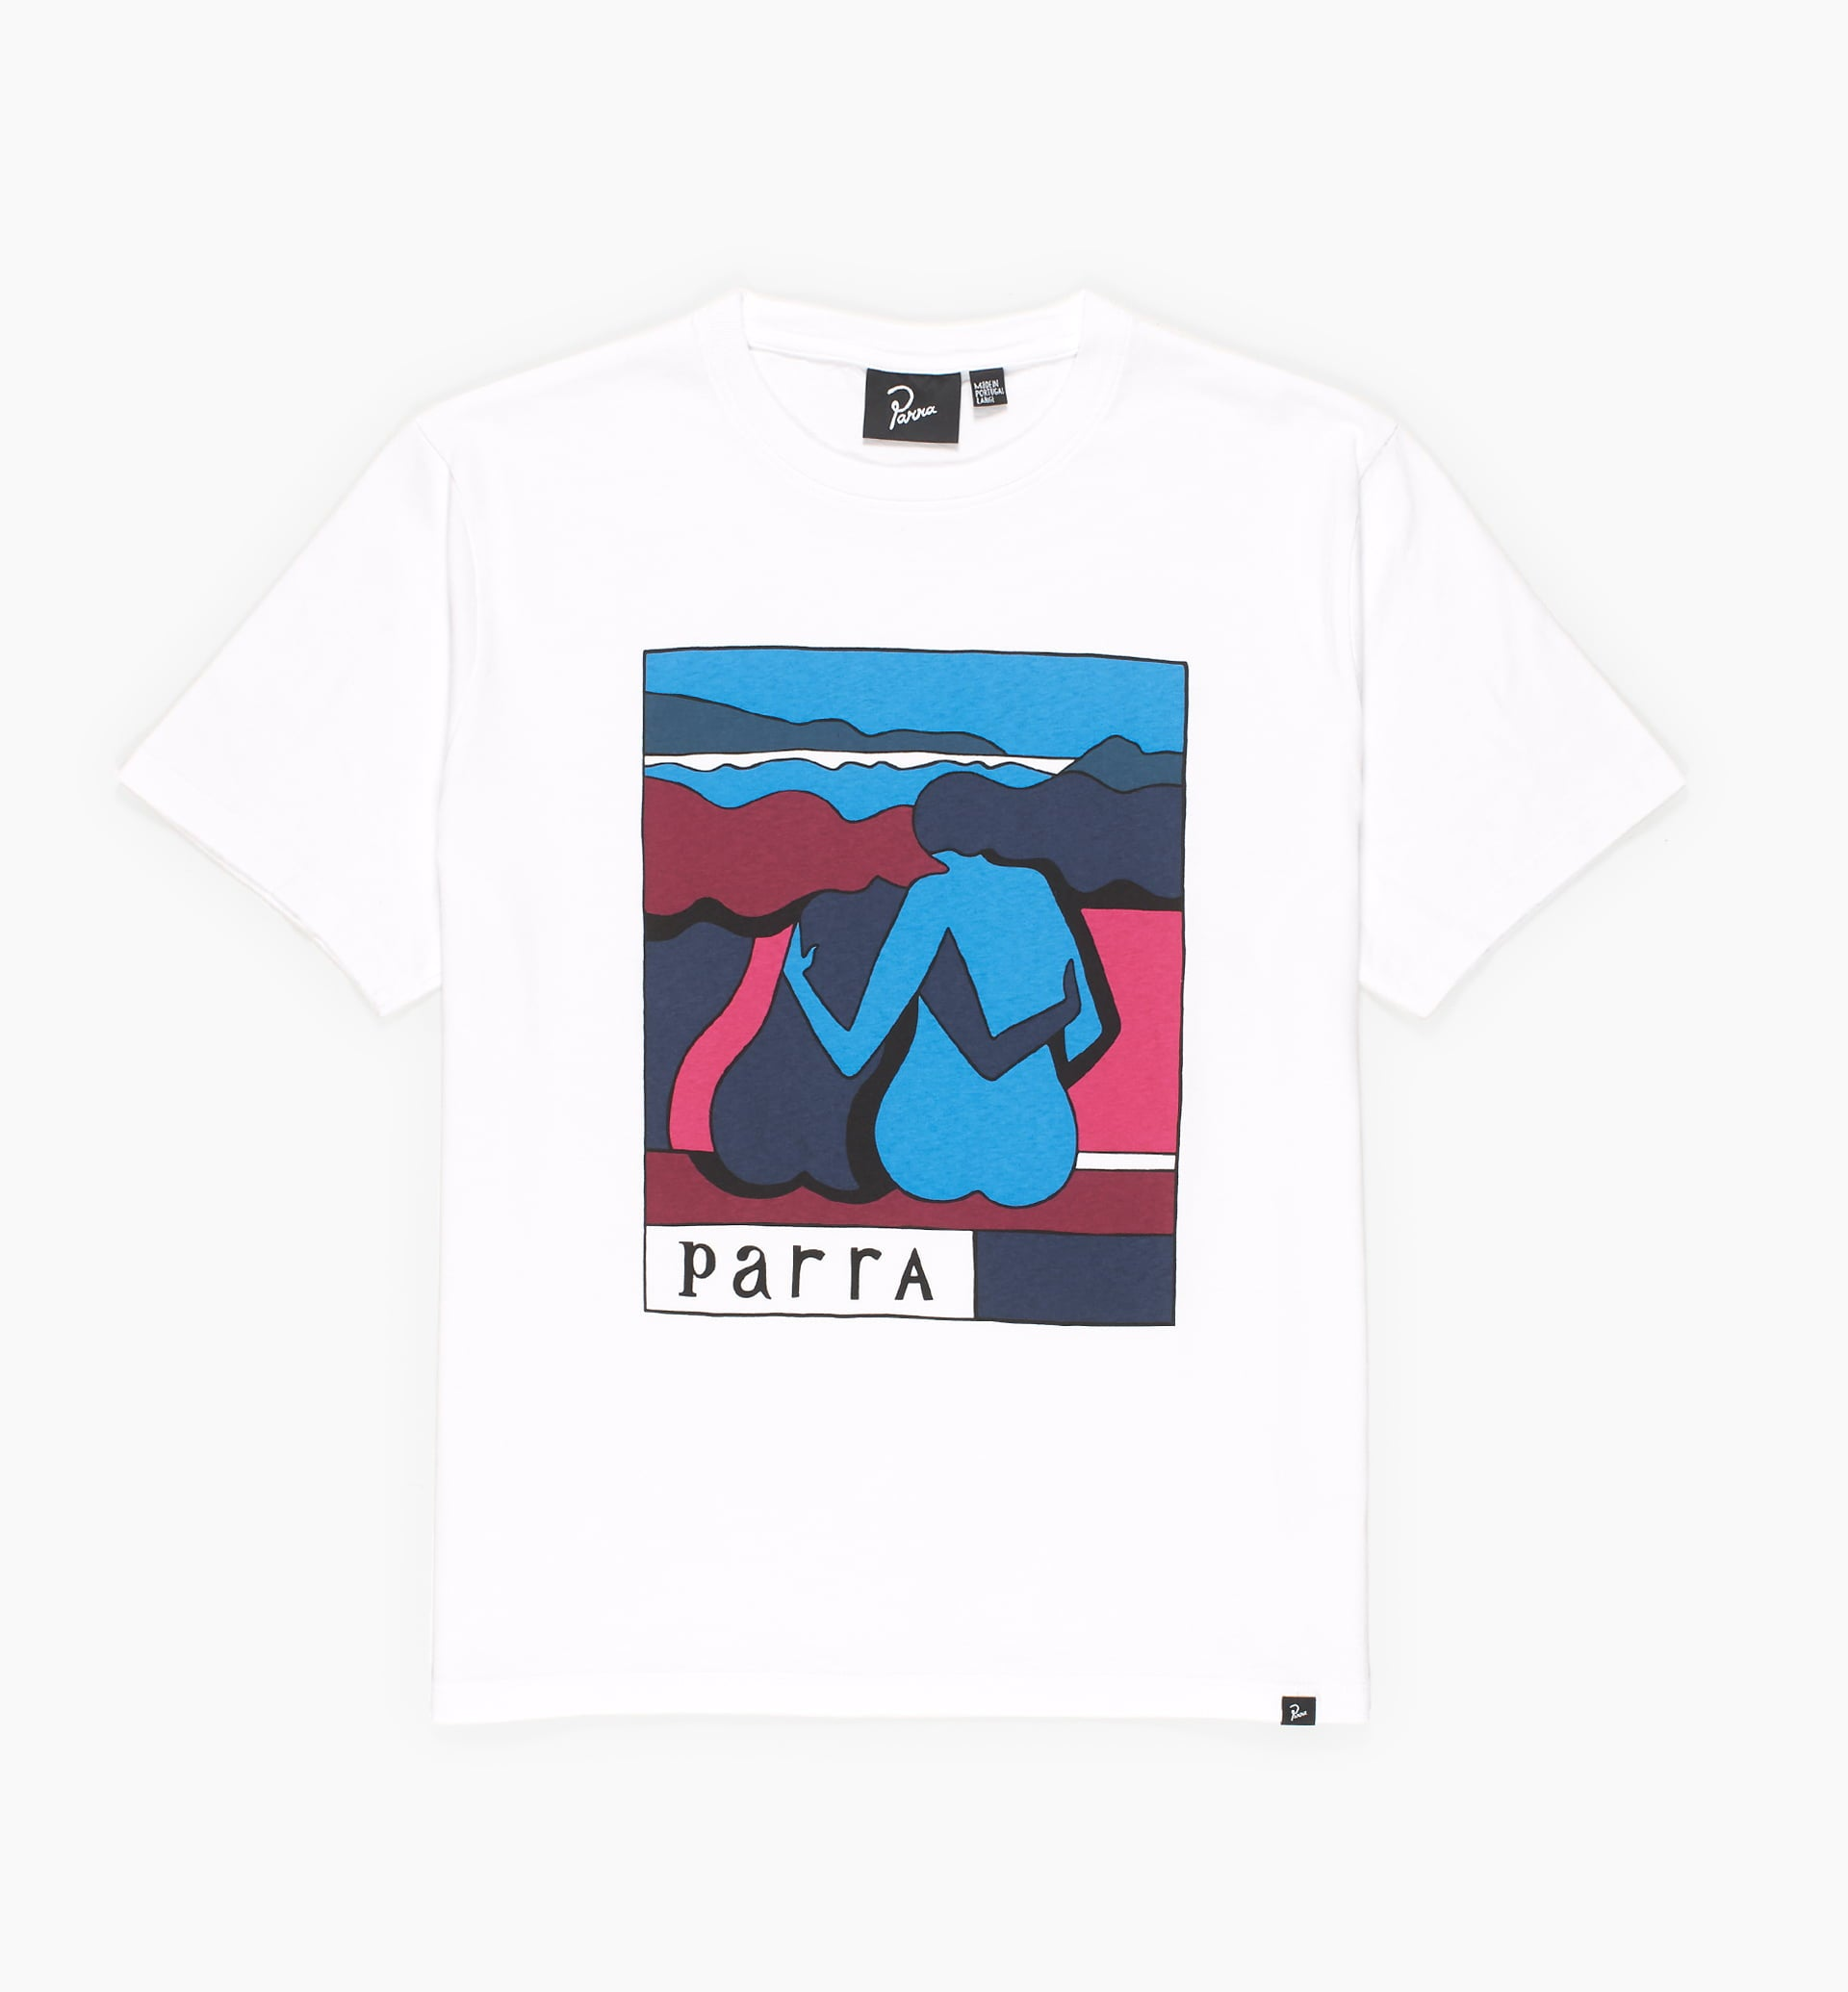 Parra - the riverbench t-shirt